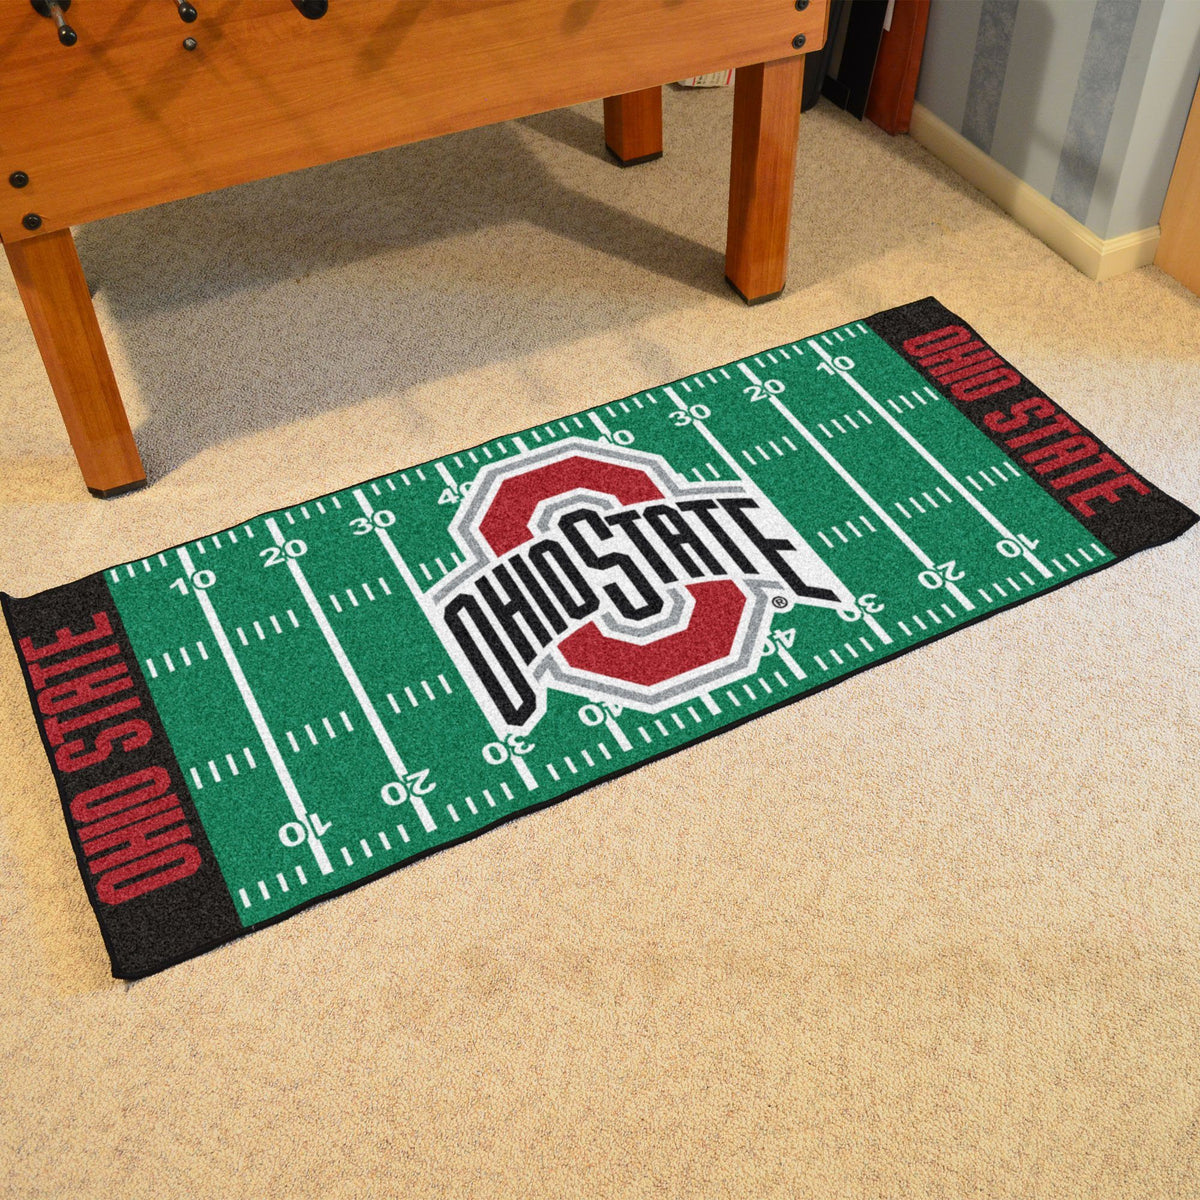 Collegiate - Football Field Runner Collegiate Mats, Rectangular Mats, Football Field Runner, Collegiate, Home Fan Mats Ohio State